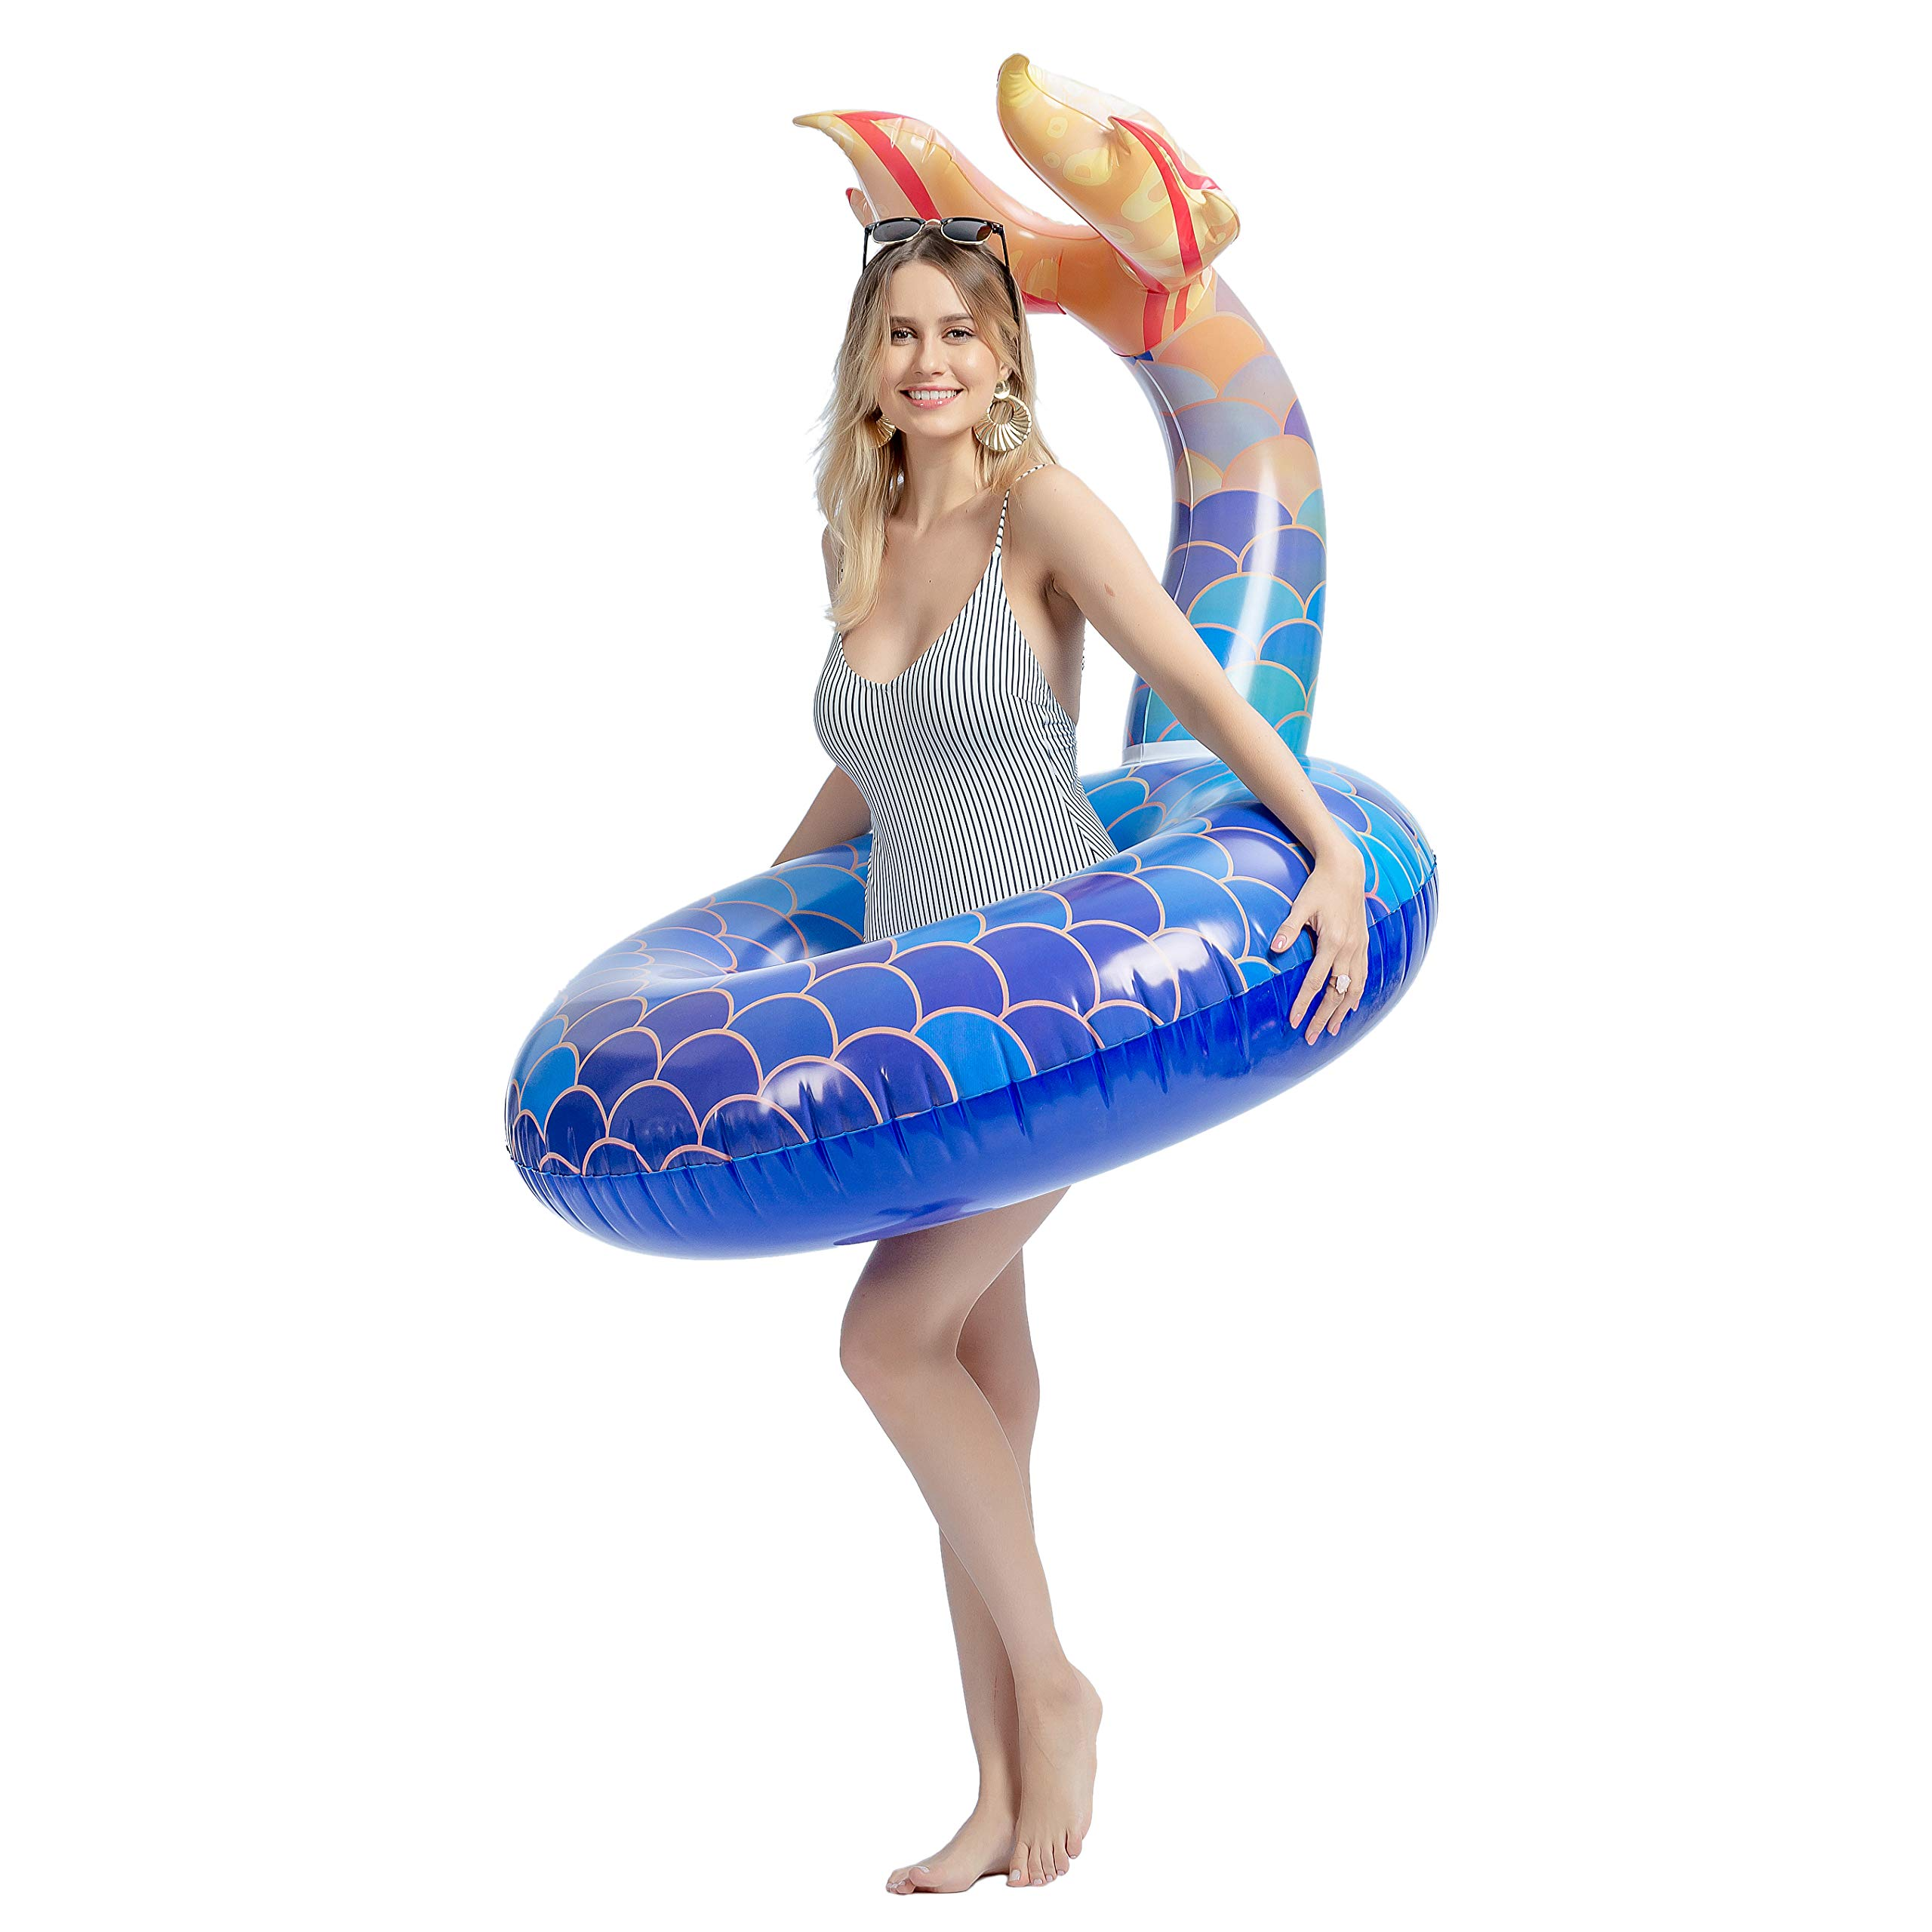 """JOYIN Inflatable Mermaid Tail Pool Float, 39"""" Pool Tubes Lounge Raft Toys for Summer Beach Swimming Pool Party Decorations"""